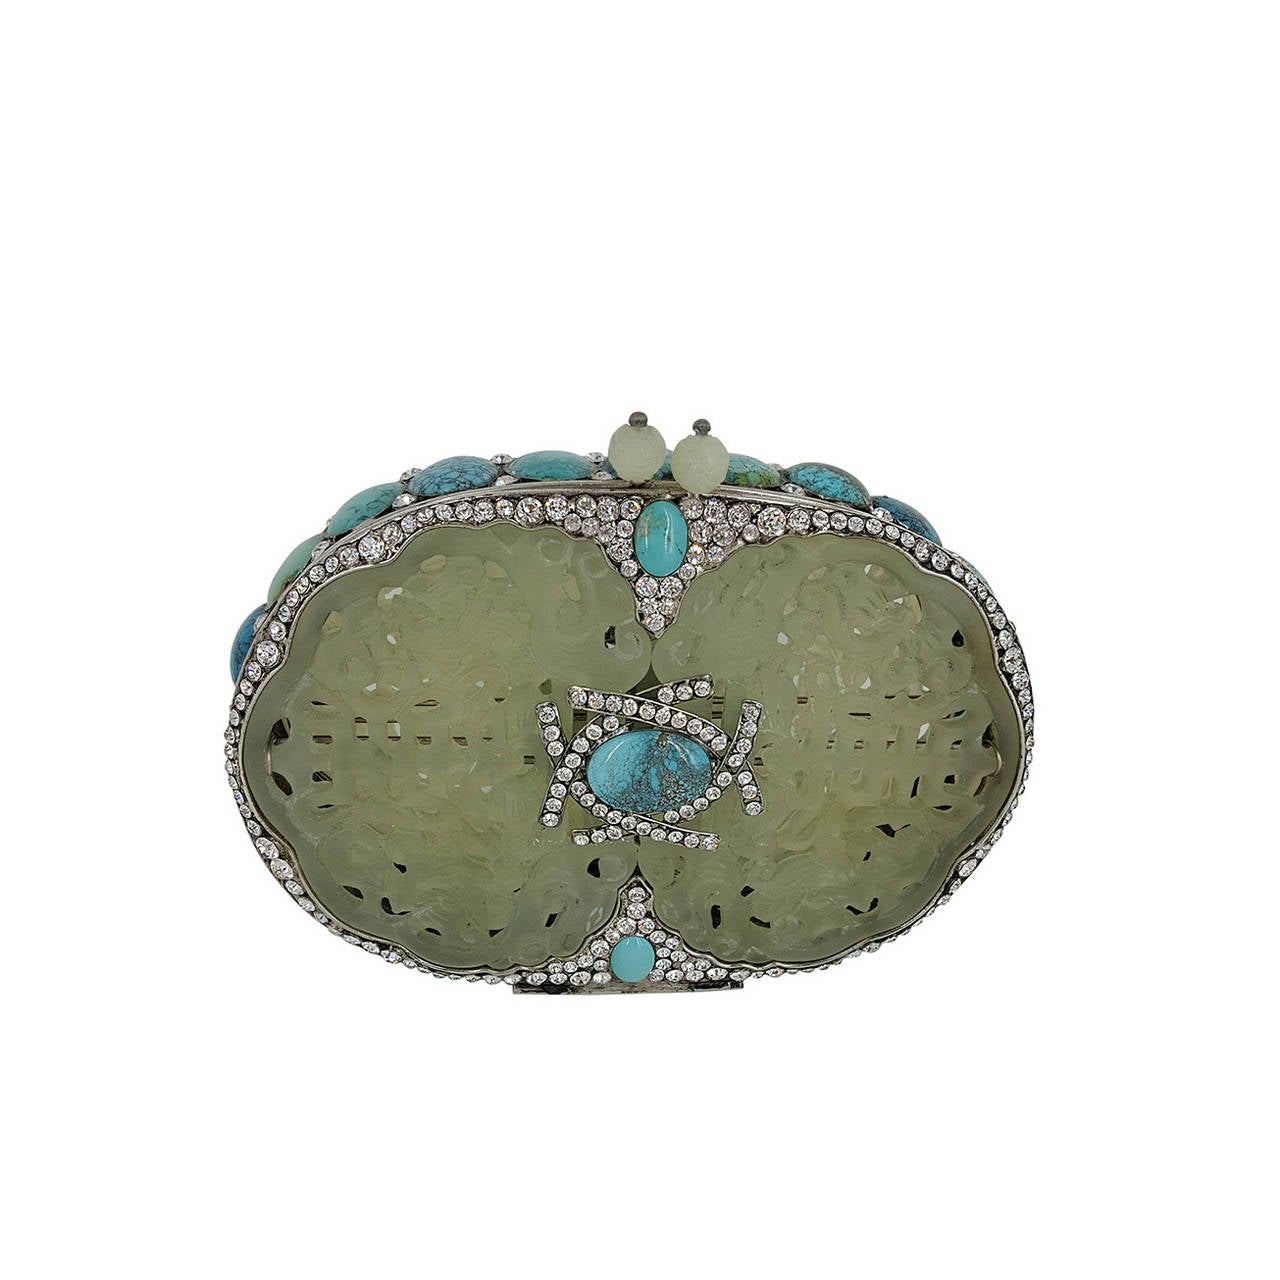 Rare Iradj Moini Minaudiere In Carved Jade, Turquoise, and Rhinestones.